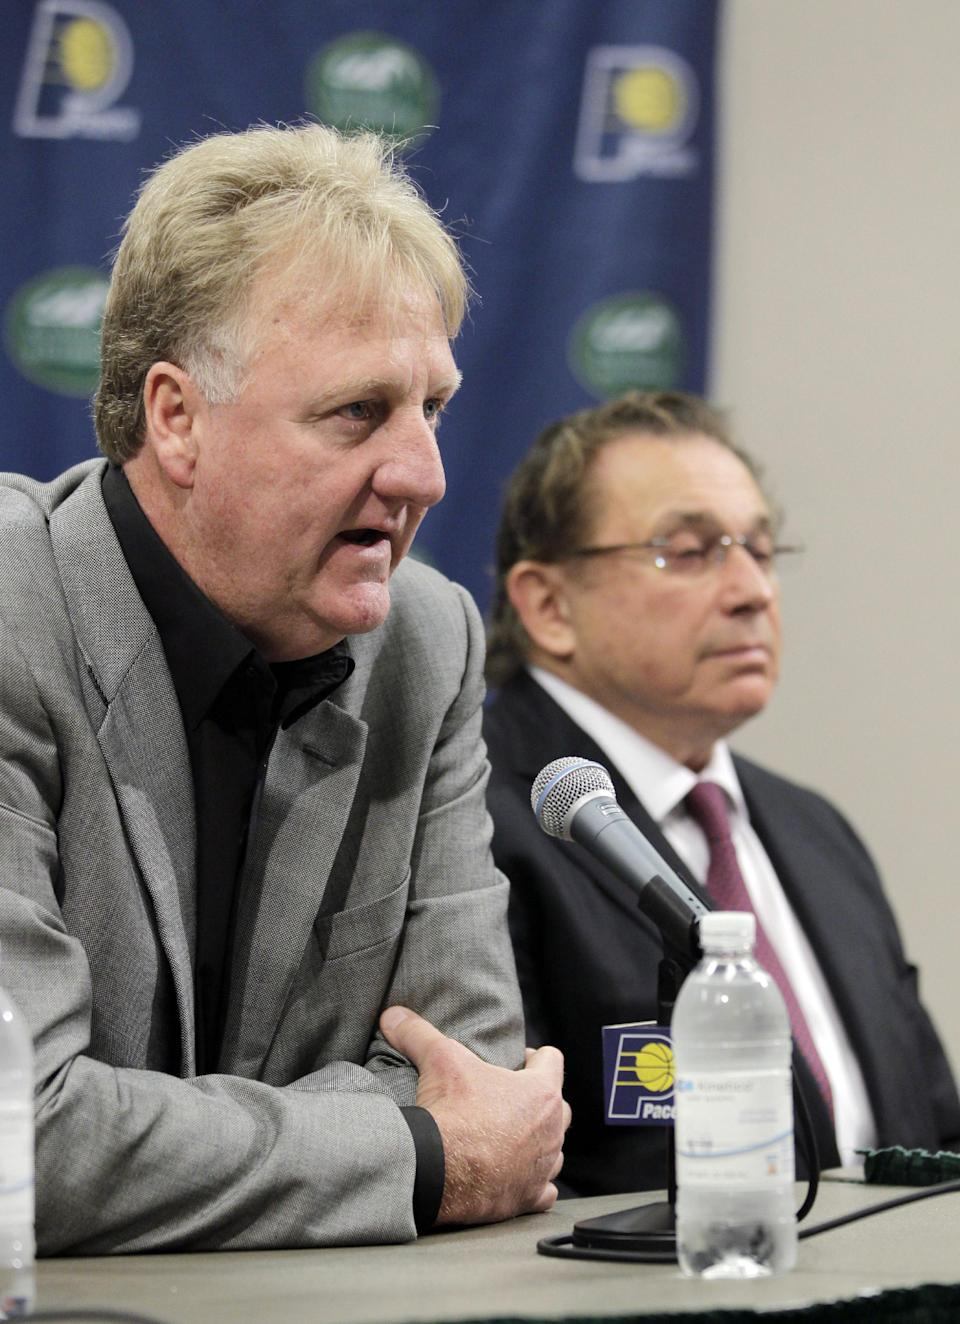 Larry Bird, left, talks about stepping down as president of the Indiana Pacers  as team owner Herb Simon listens during an announcement by the NBA basketball team in Indianapolis, Wednesday, June 27, 2012. Donnie Walsh was named as president and Kevin Pritchard as general manager. (AP Photo/Michael Conroy)